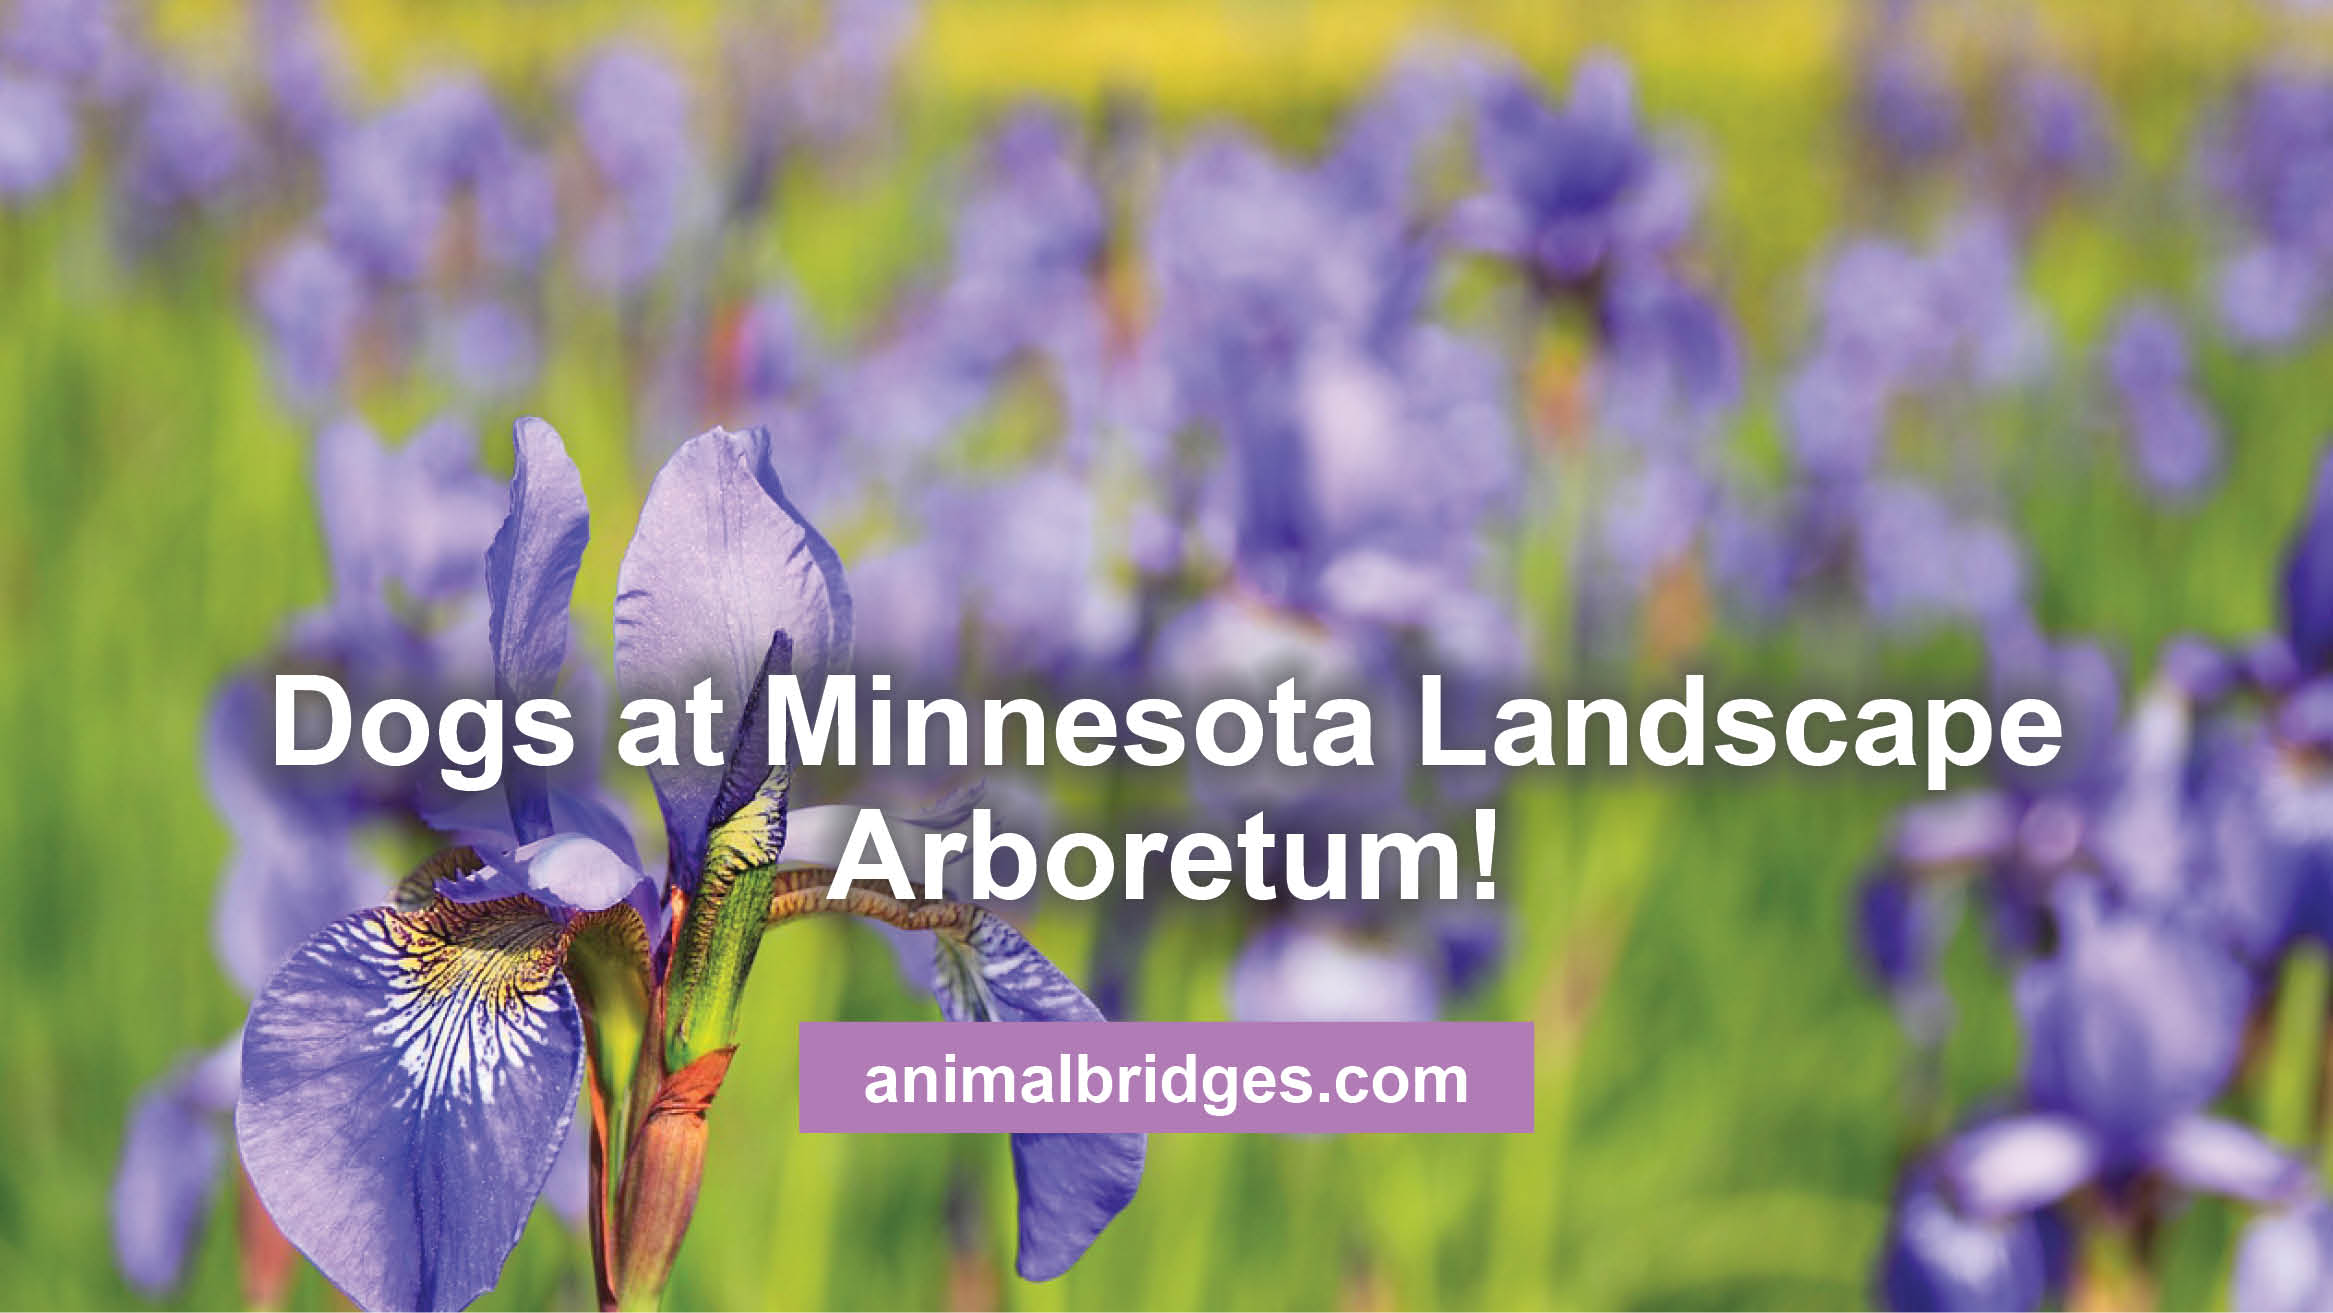 Dogs at Minnesota Landscape Arboretum!